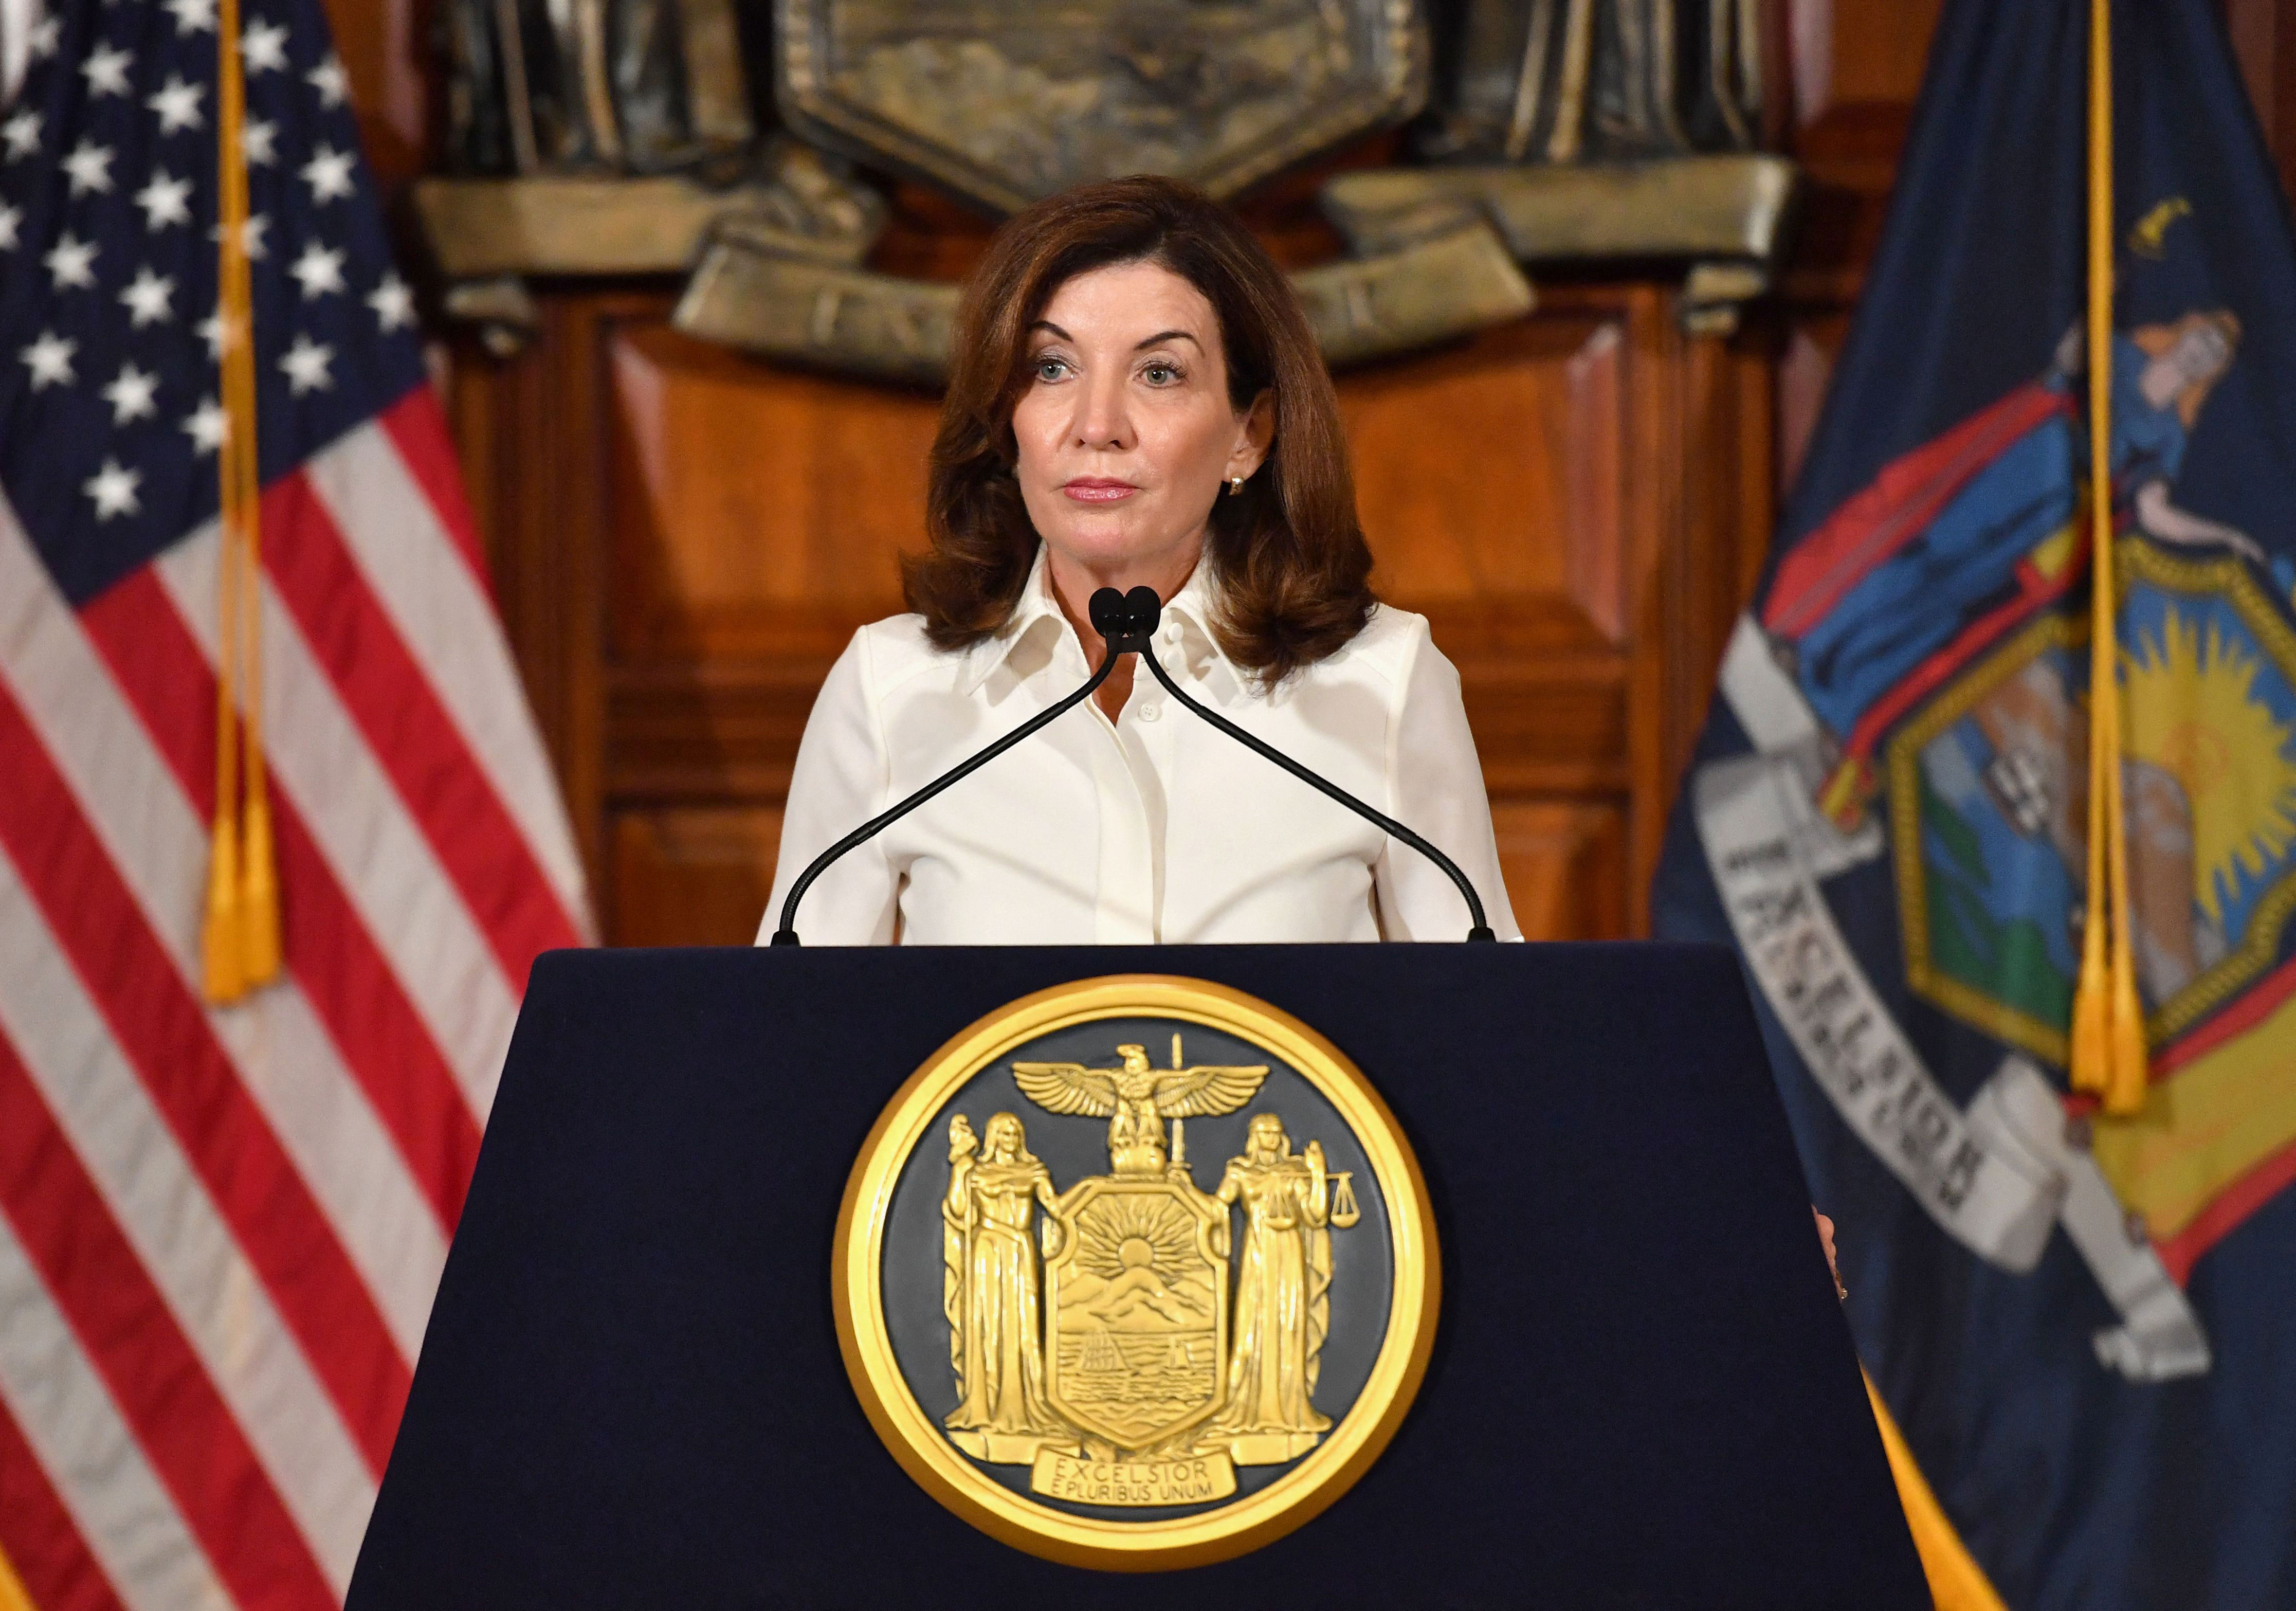 New York Gov. Kathy Hochul speaks during her swearing-in ceremony at the New York State Capitol in Albany on August 24.